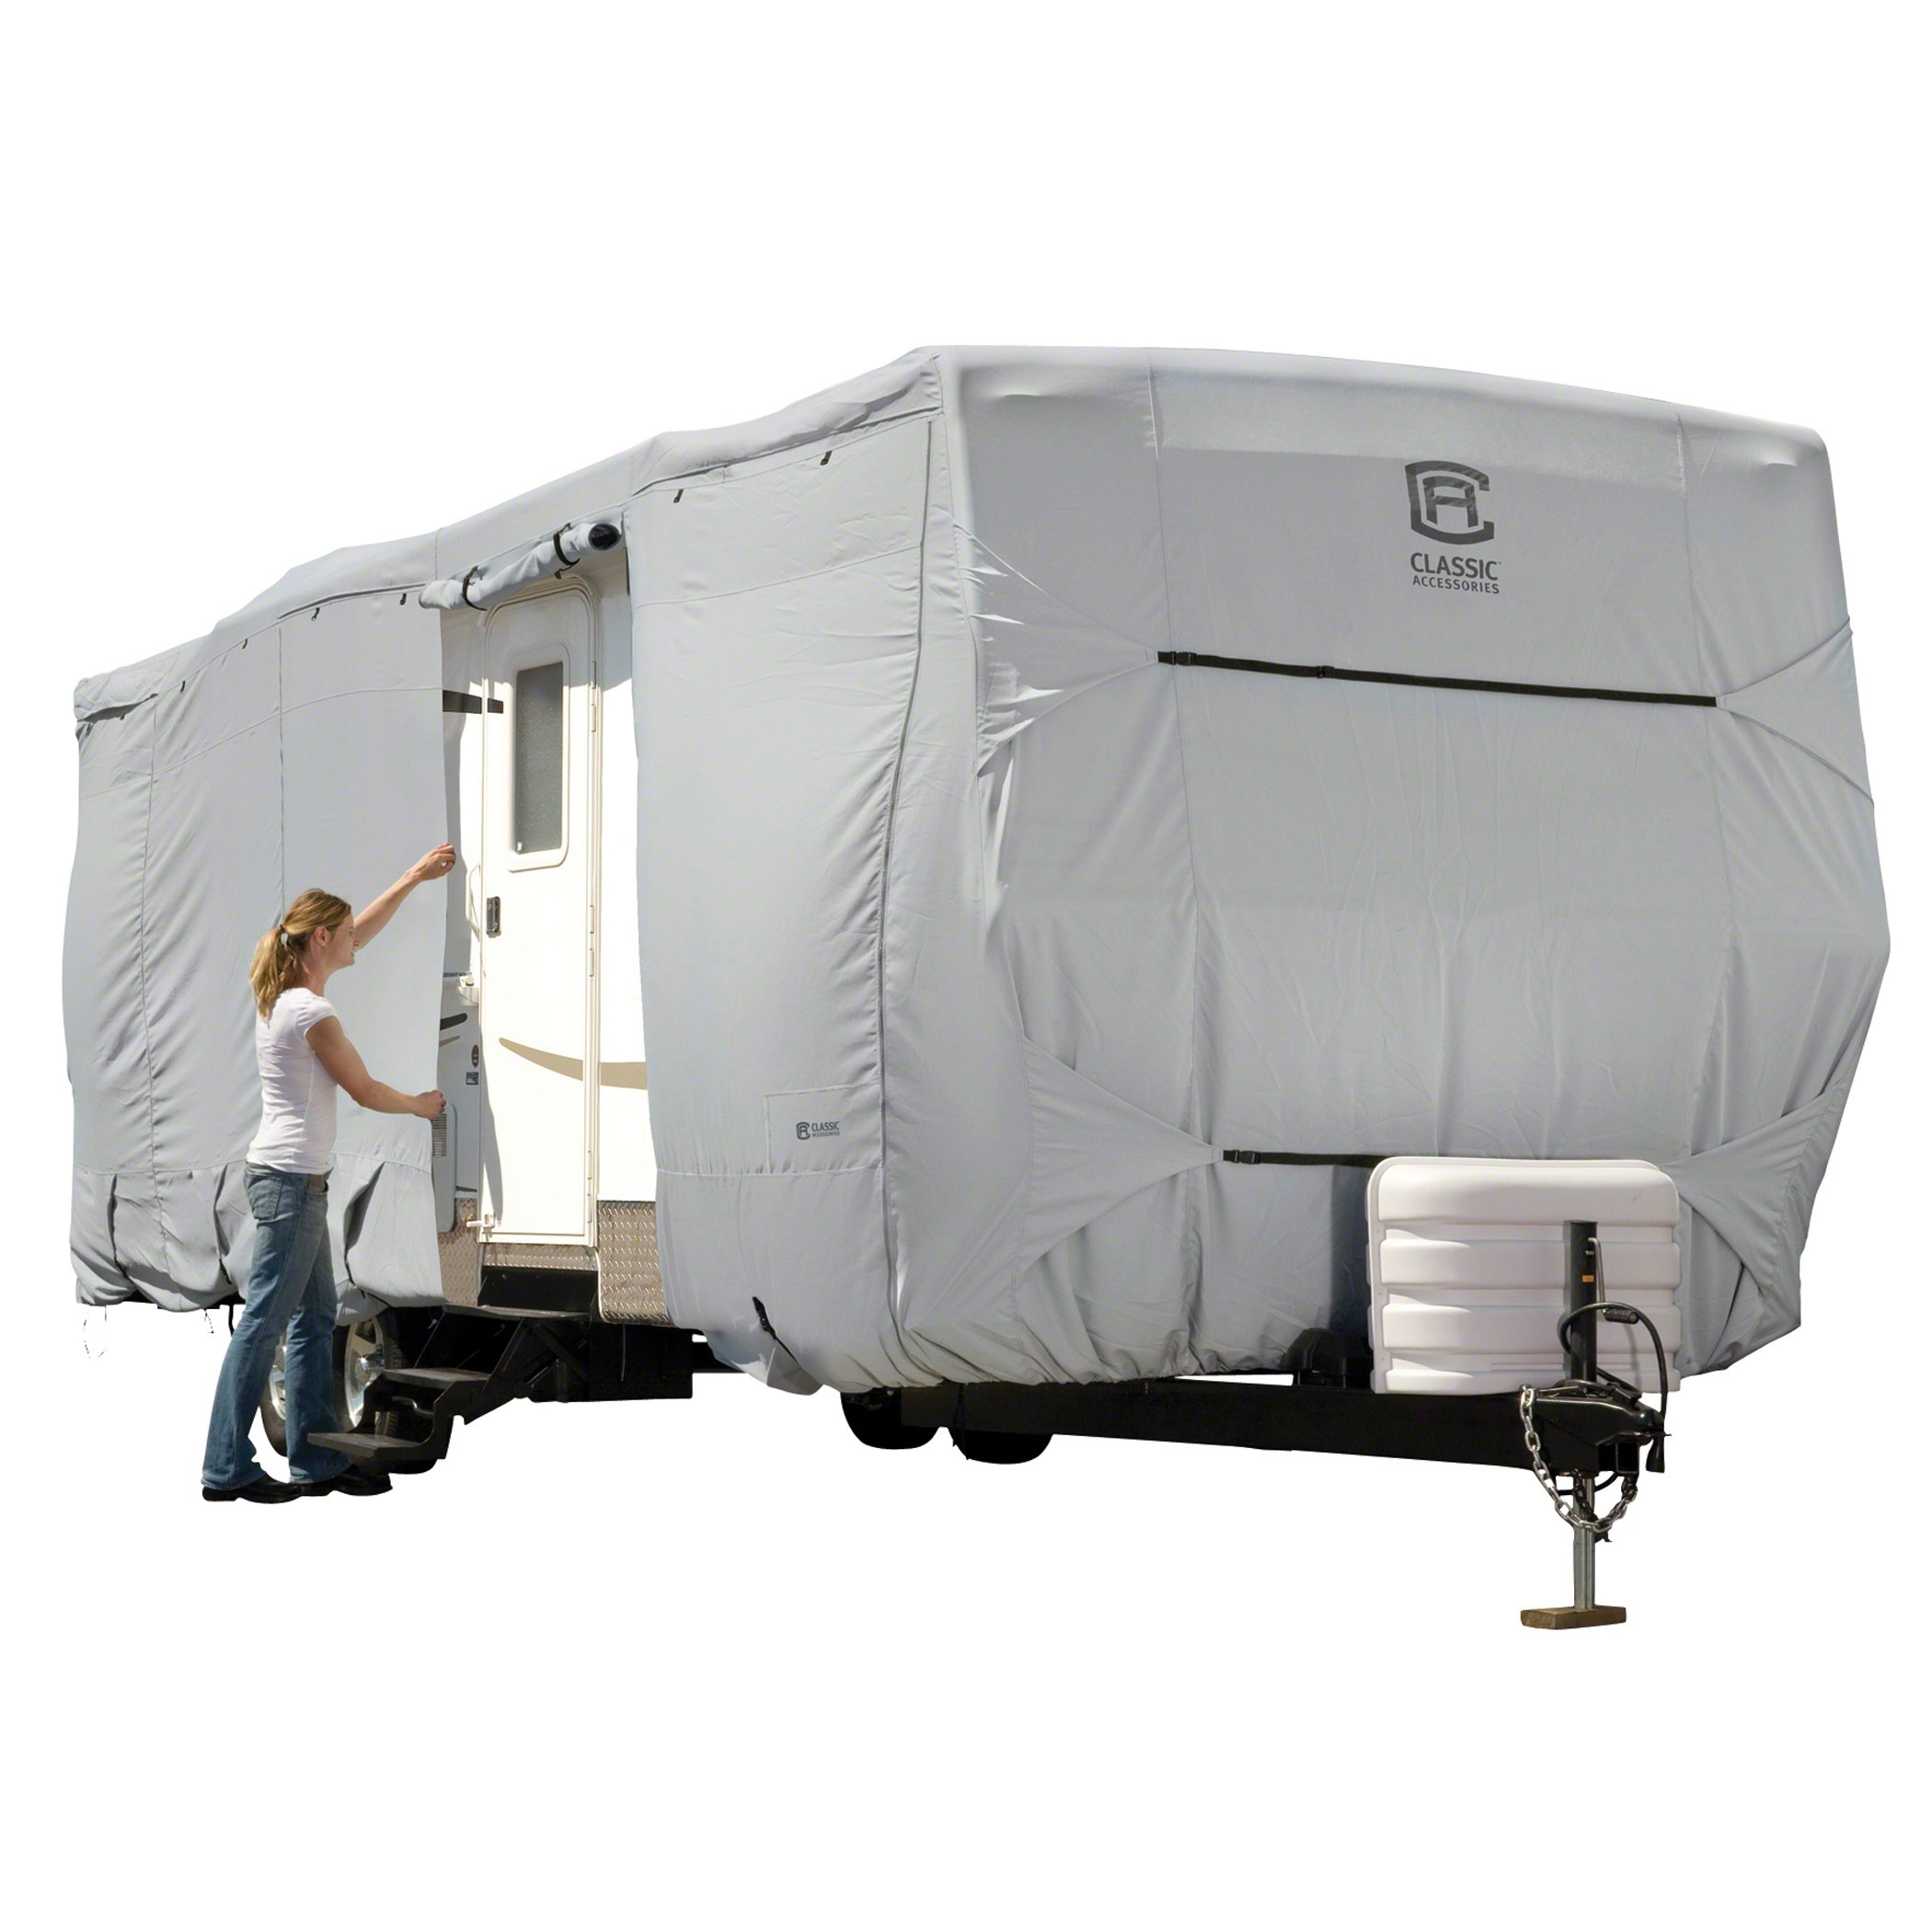 80-326-211001-RT Classic Accessories RV Cover For Travel Trailers